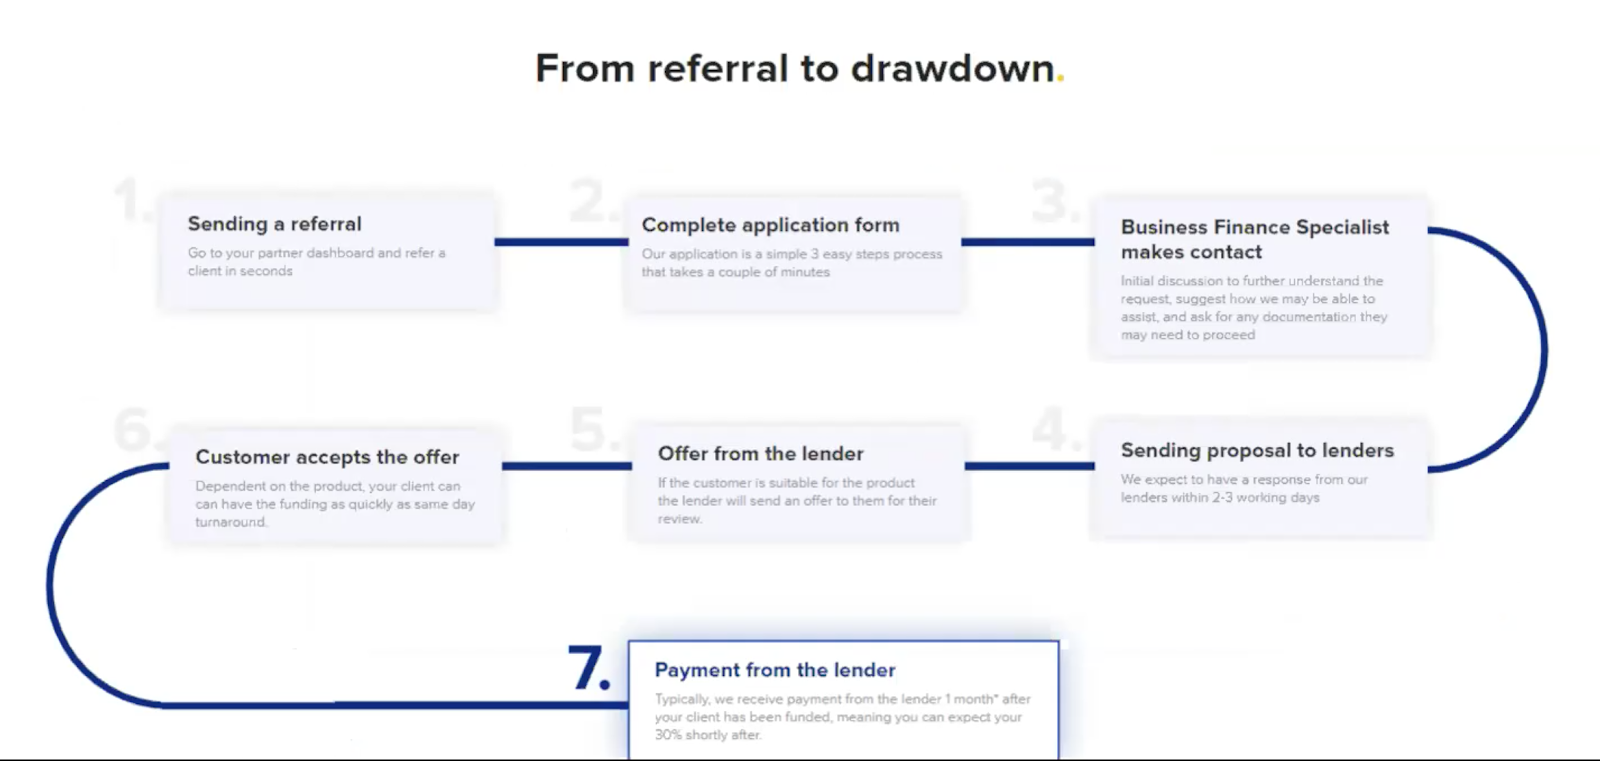 referral to drawdown diagram